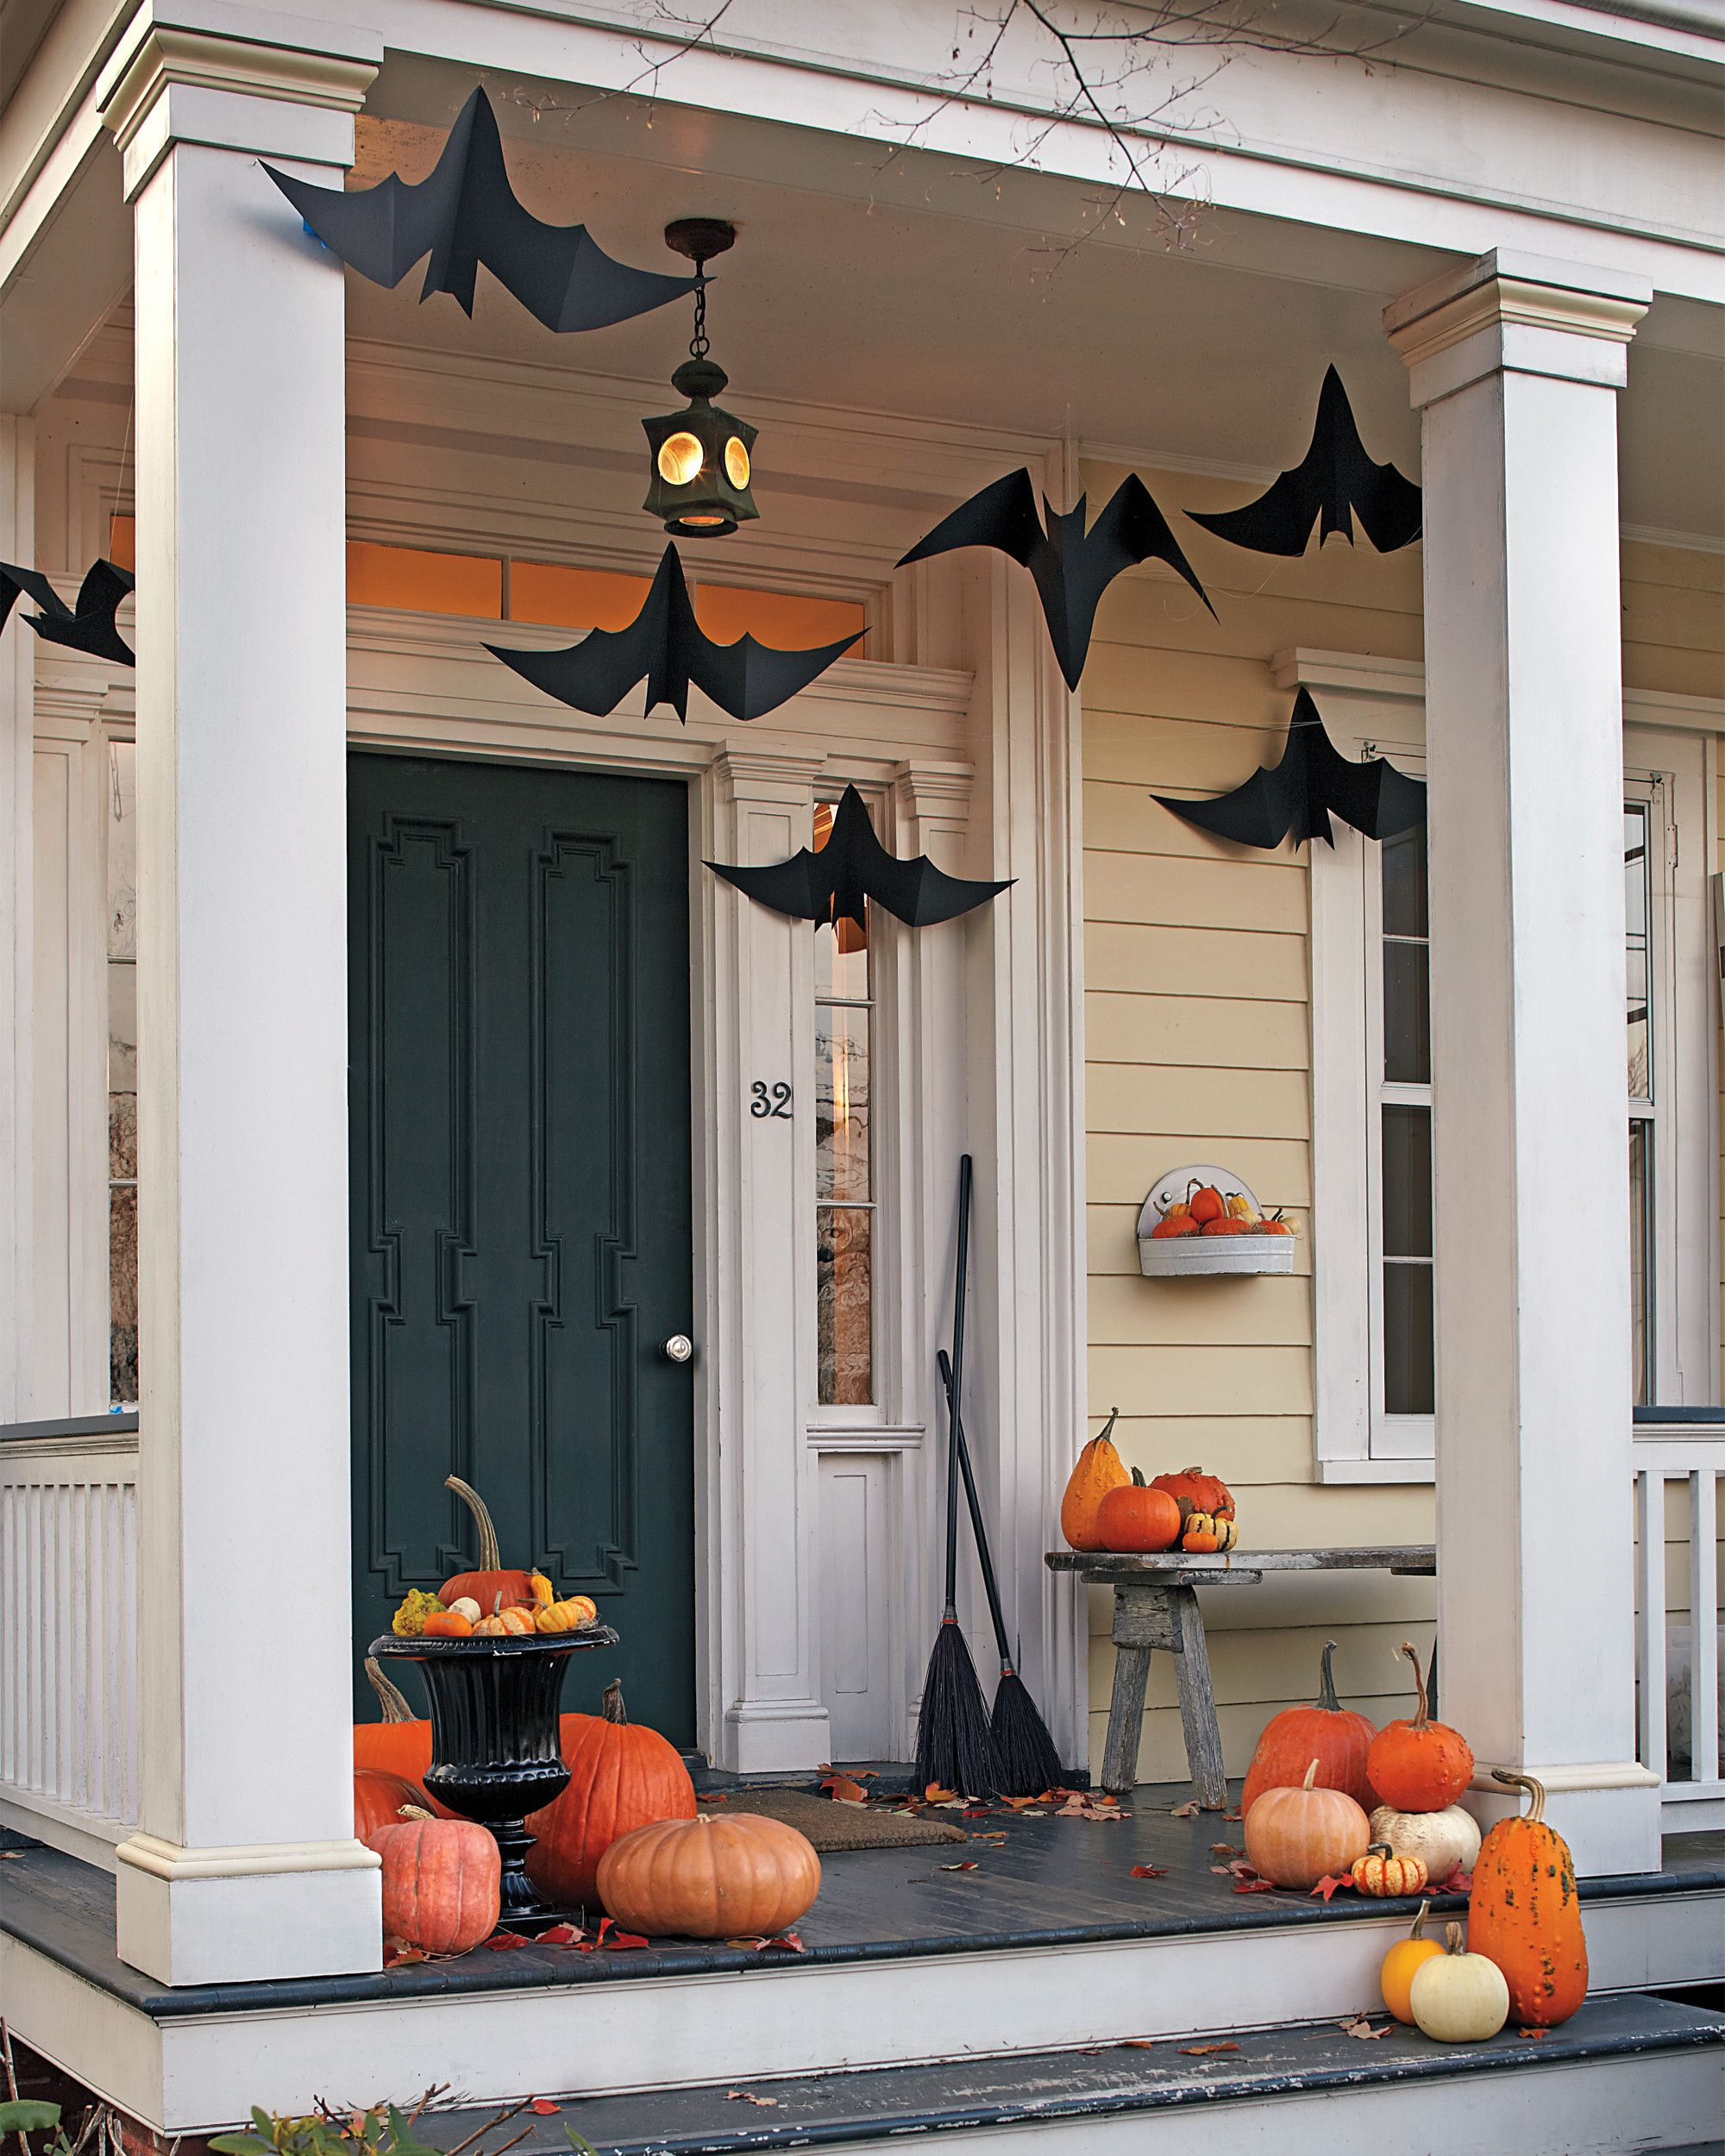 25 of Our Best Outdoor Halloween Decorations